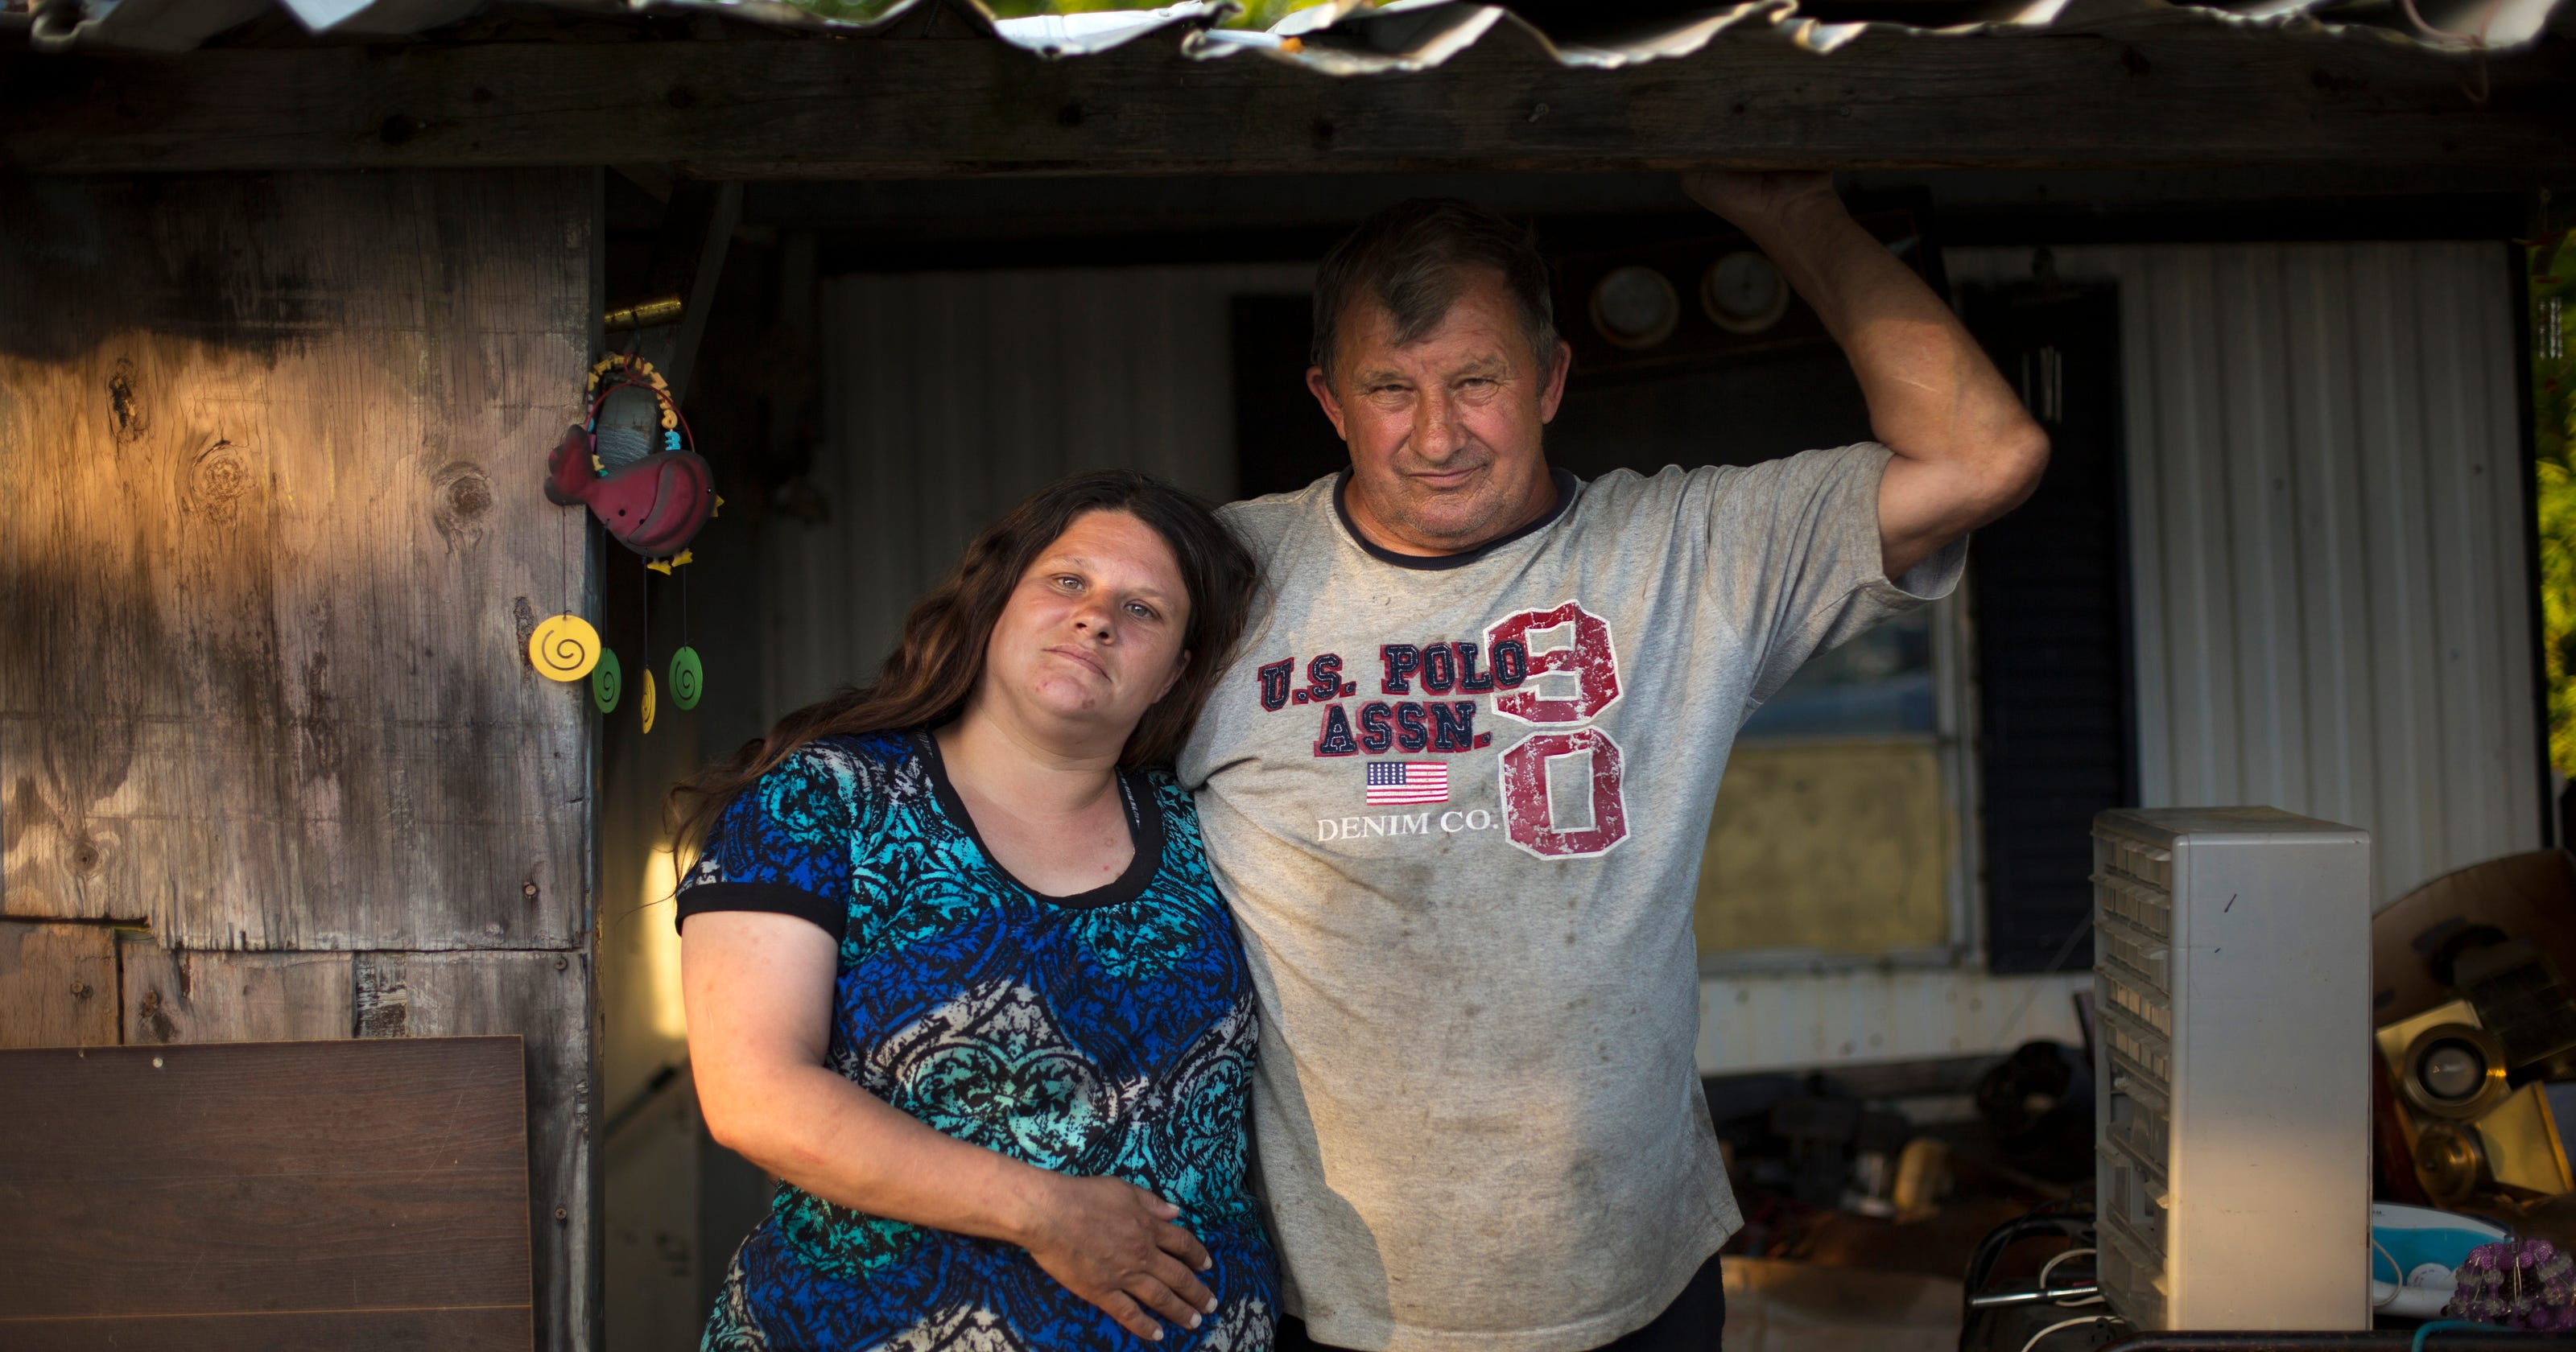 Rhoden Family Massacre: With no answers, family marks time